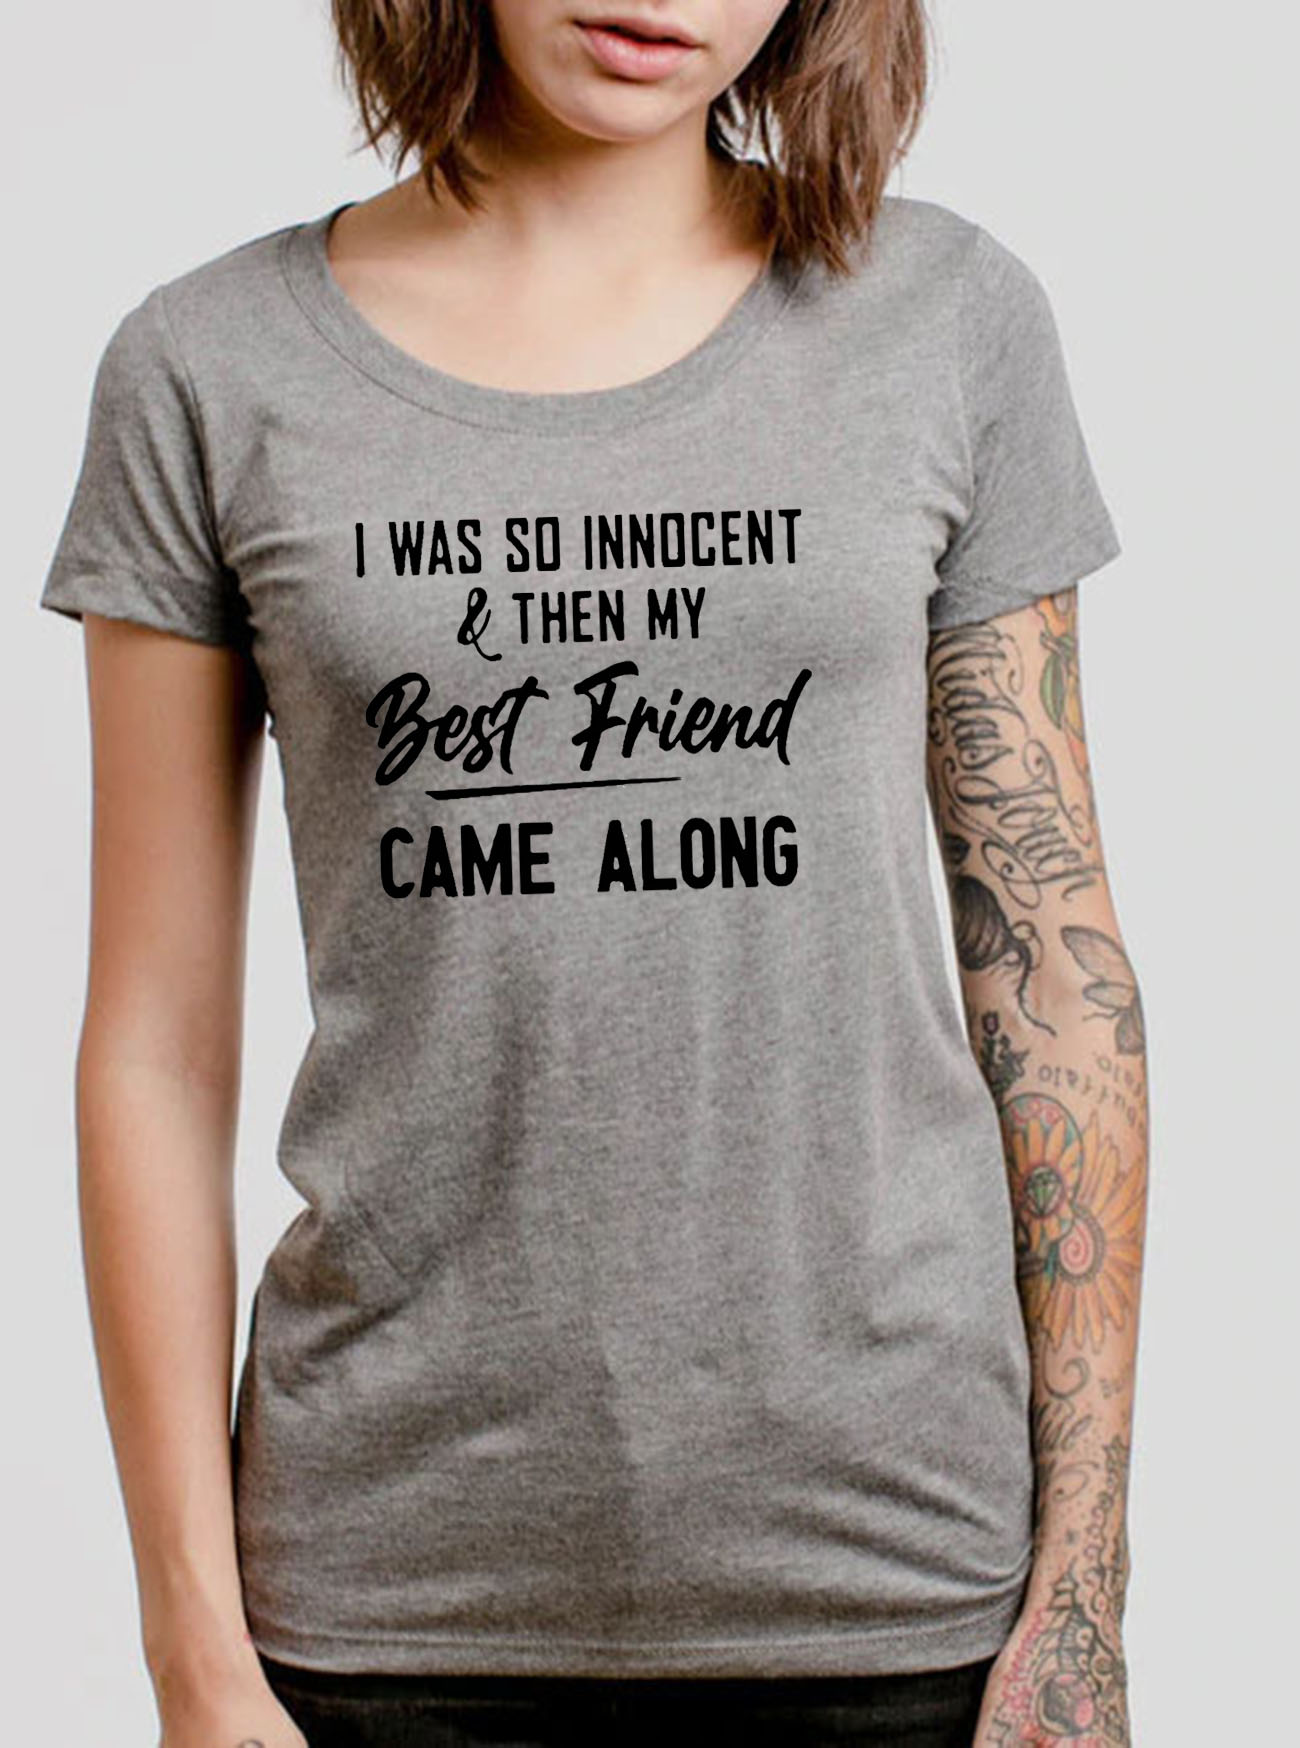 I Was So Innocent & Then My Best Friend Came Along Tee Shirts